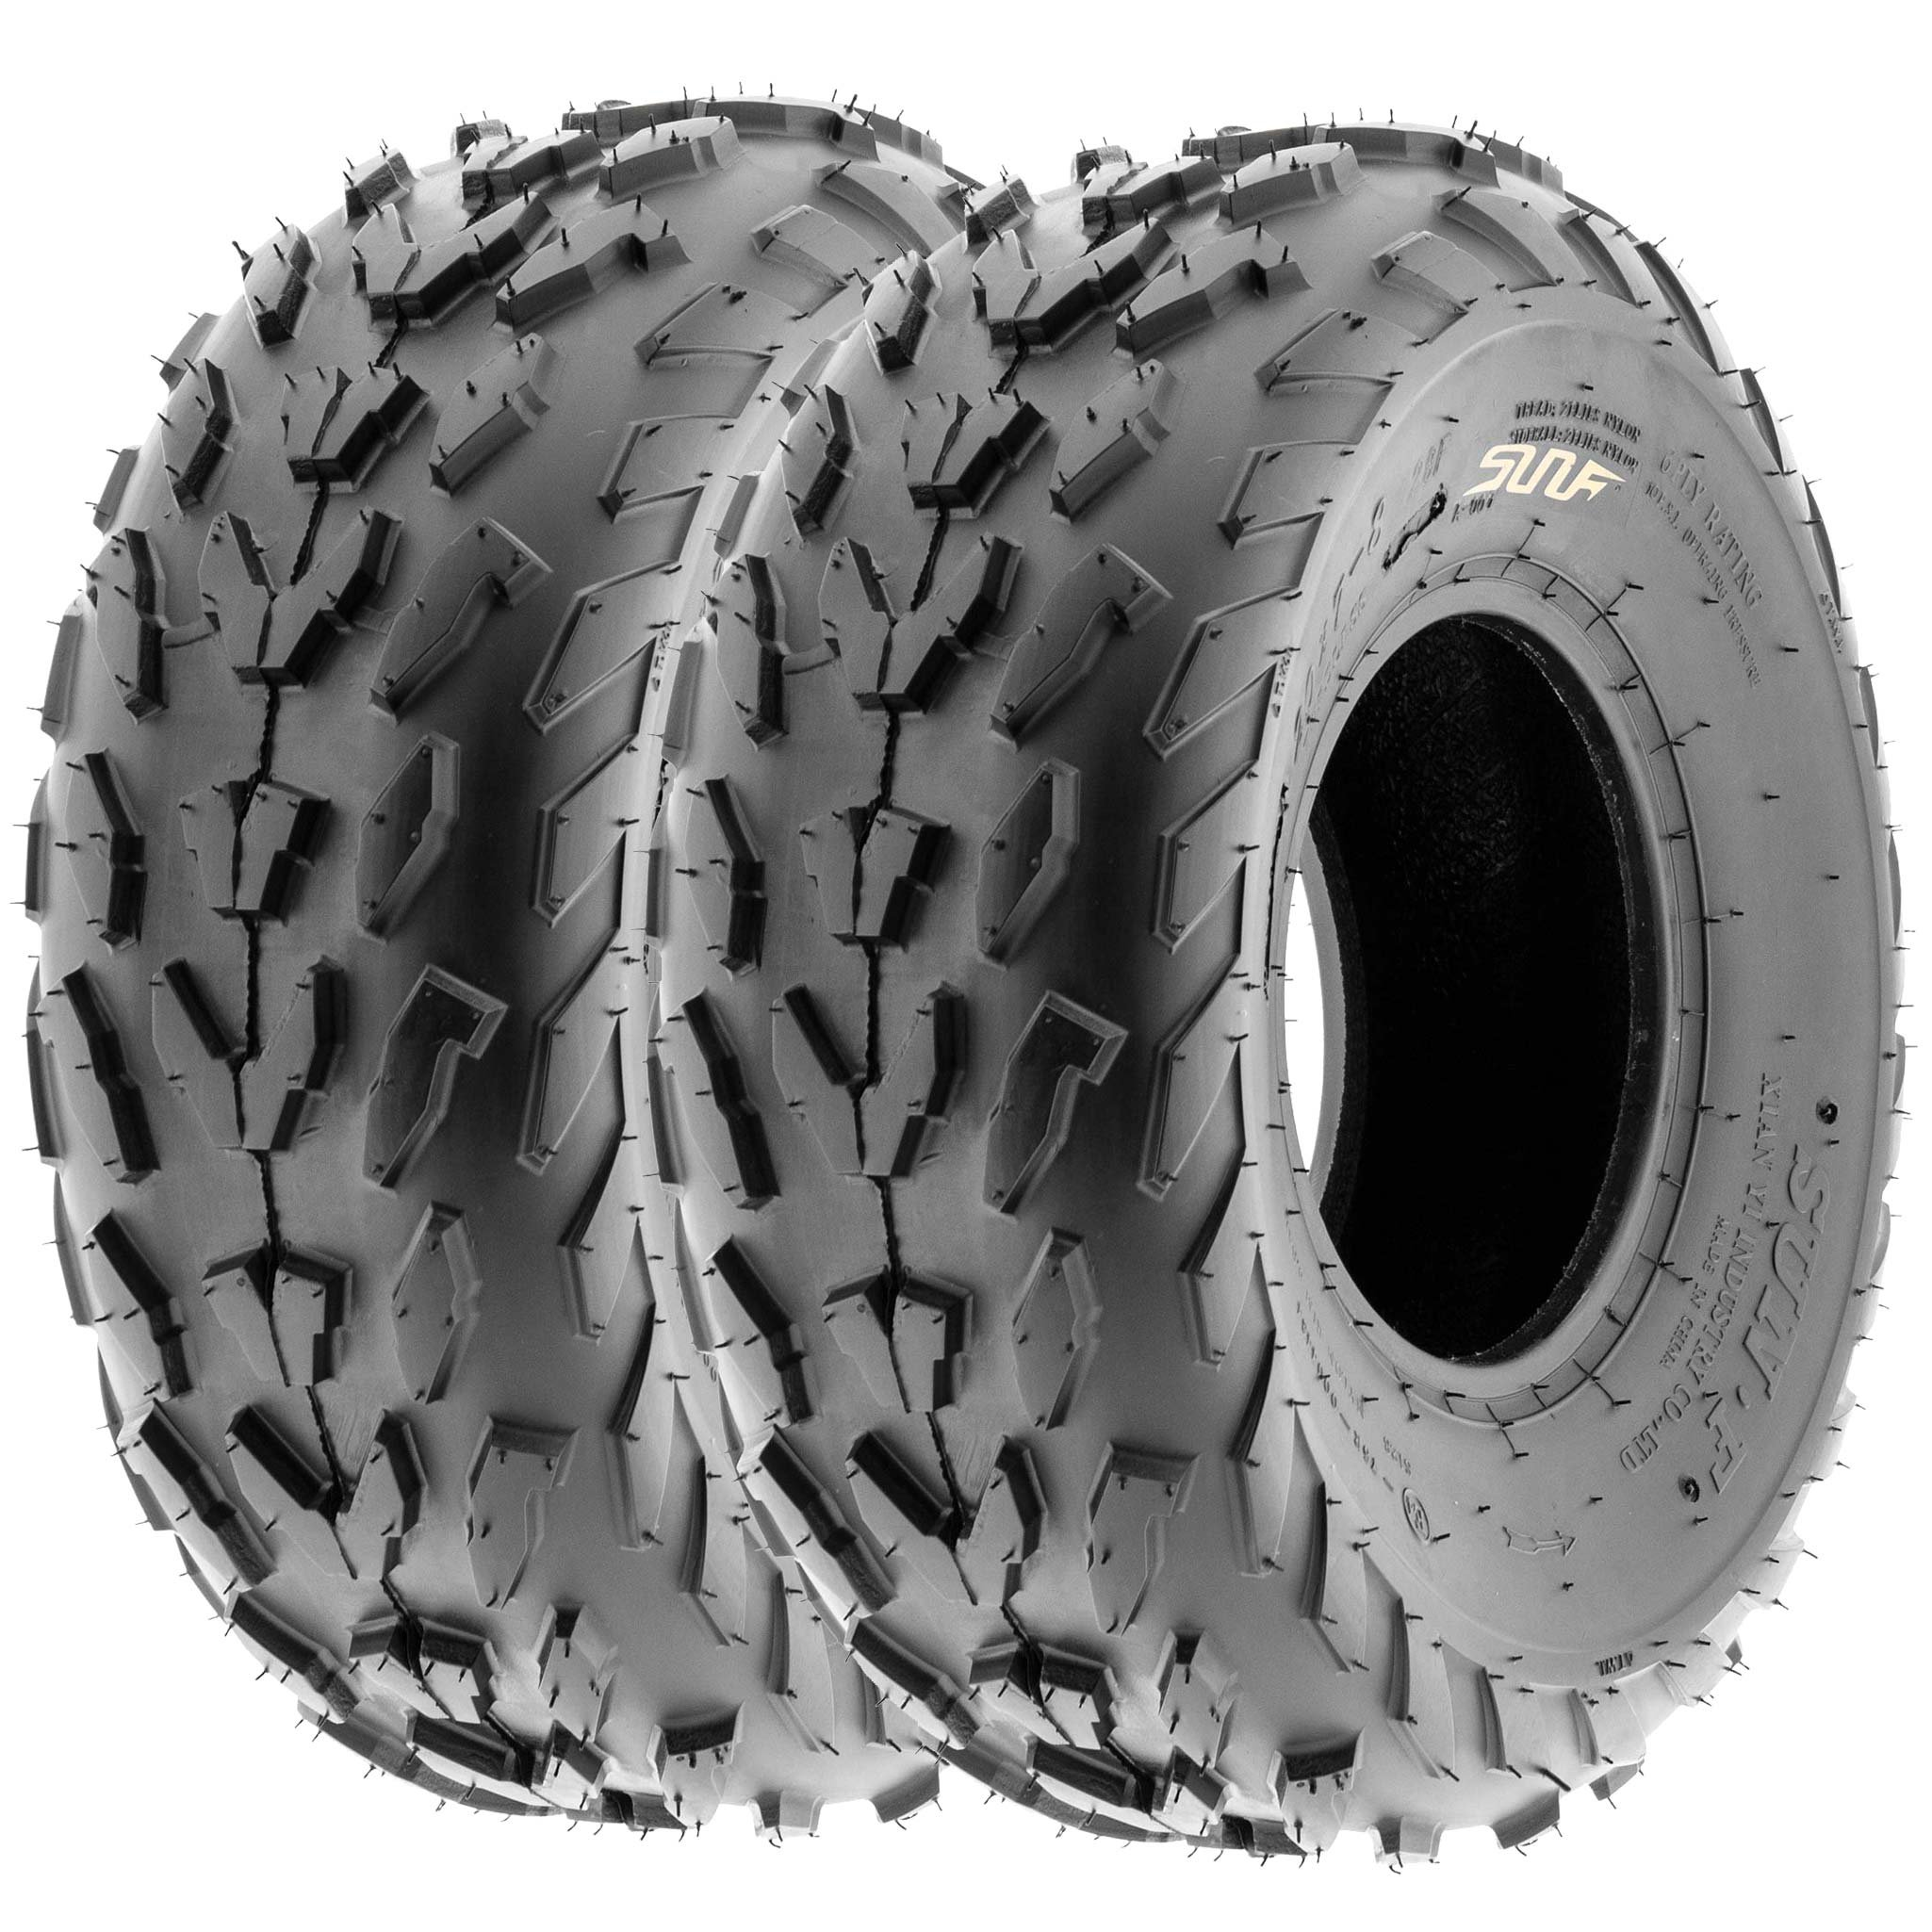 SunF 20x7-8 20x7x8 ATV UTV A/T Quad Race Replacement 6 PR Tubeless Tires A007, [Set of 2]